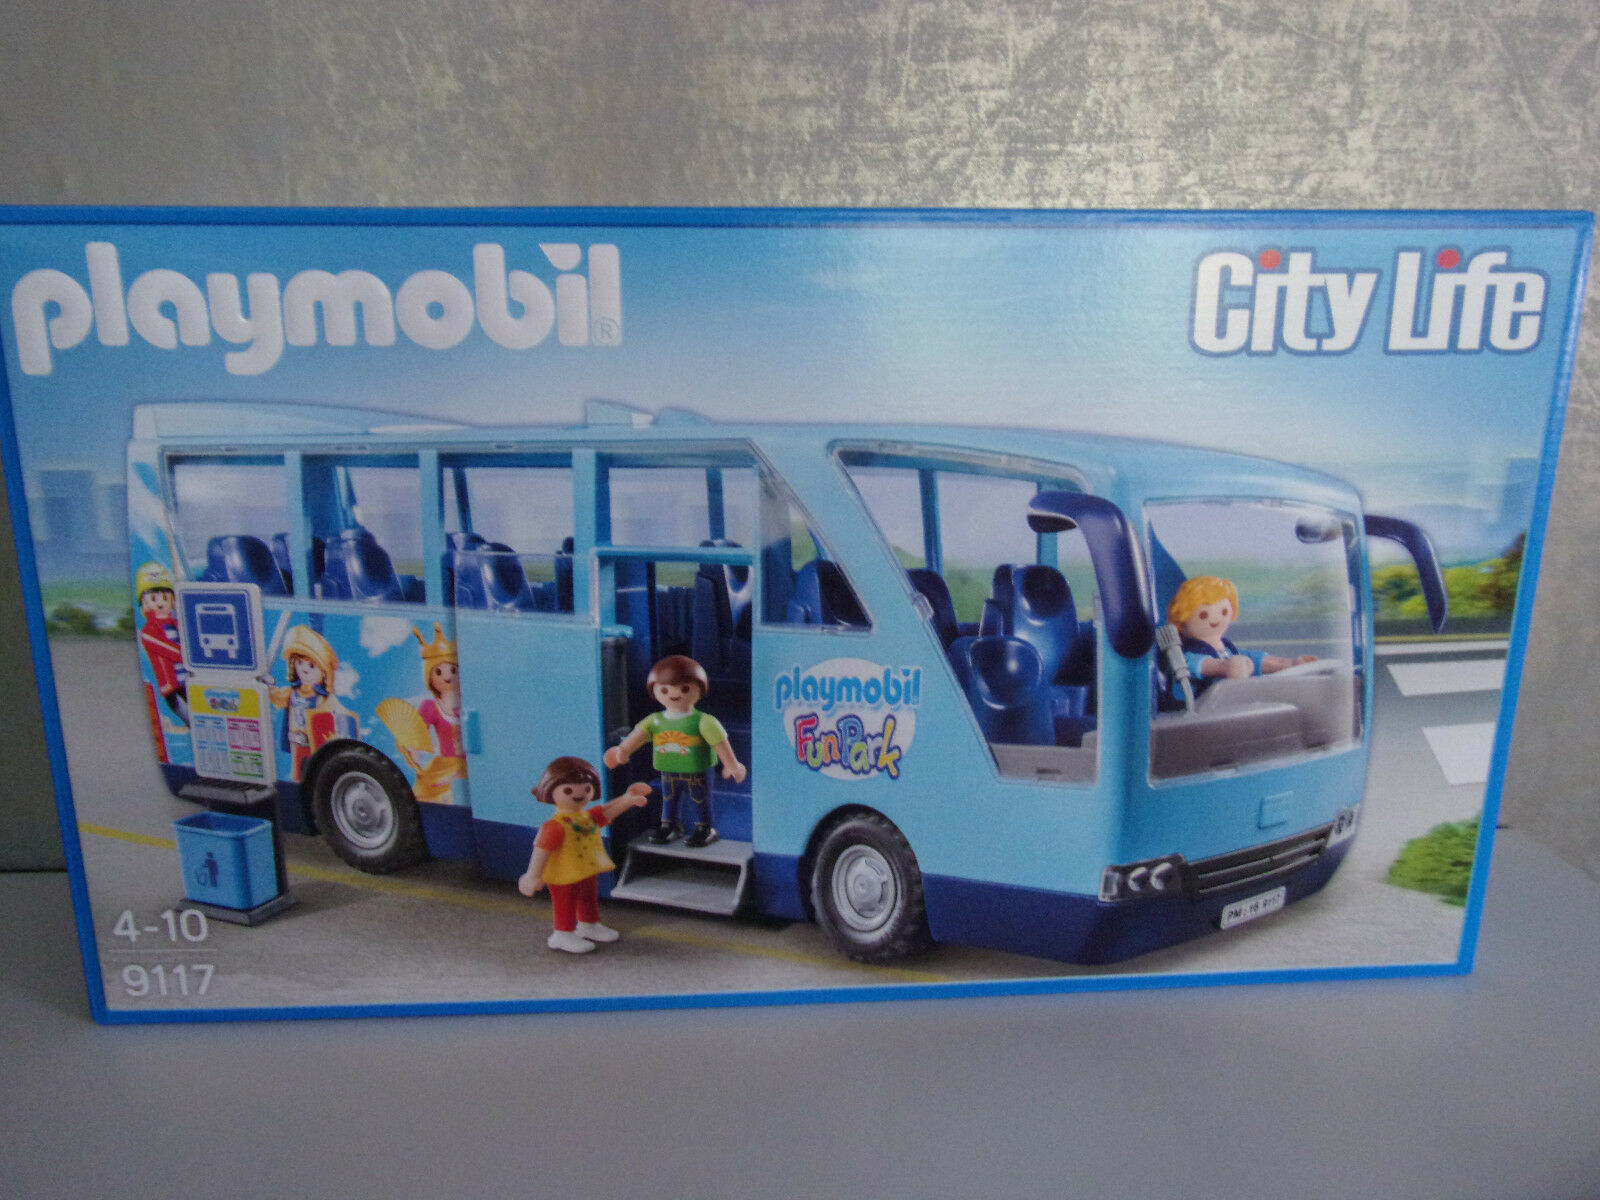 Playmobil City Life 9117 Scuolabus Divertimento Park -